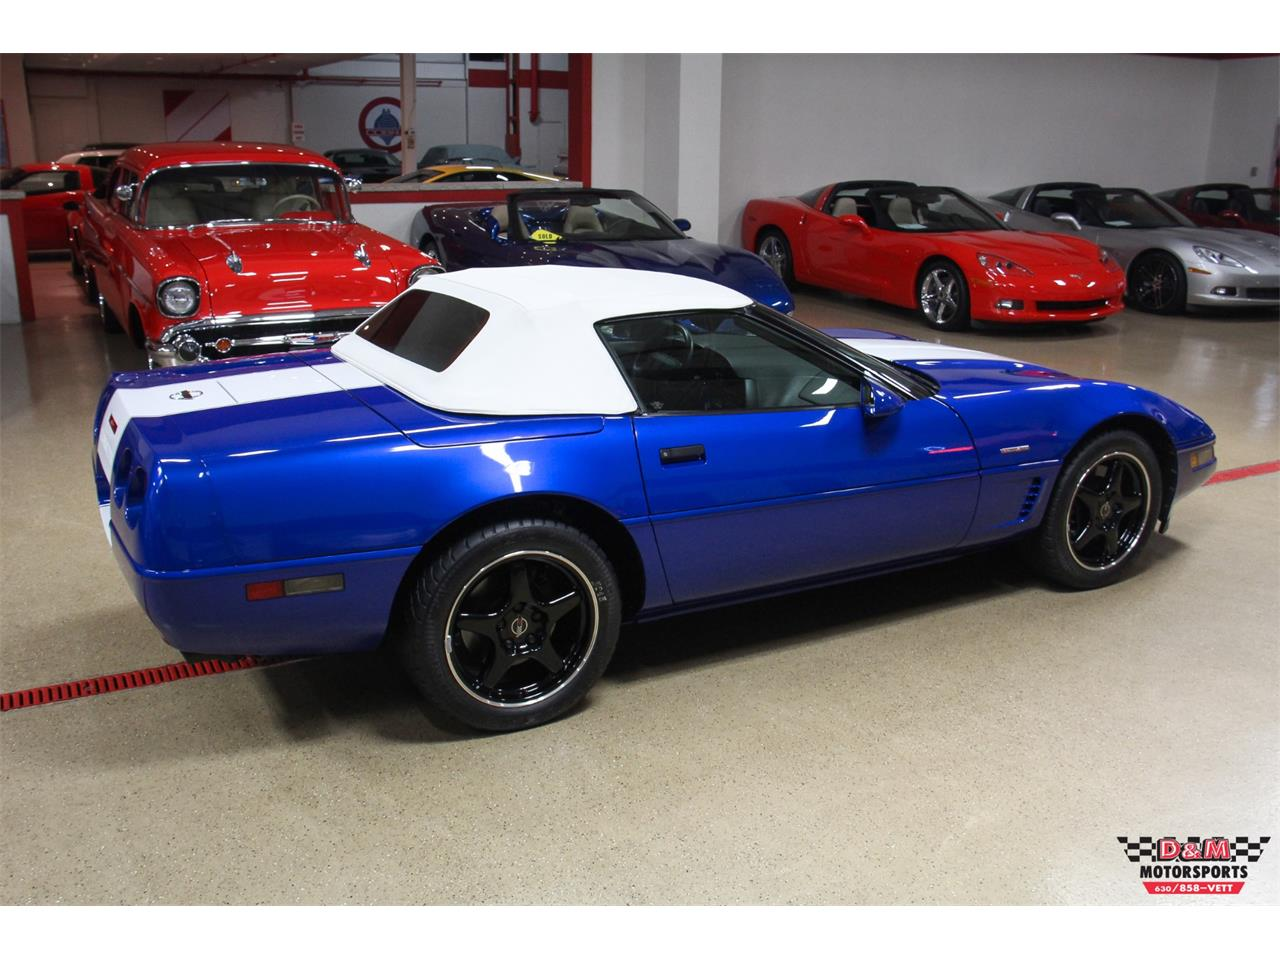 Large Picture of 1996 Corvette - $44,995.00 Offered by D & M Motorsports - LV9Z